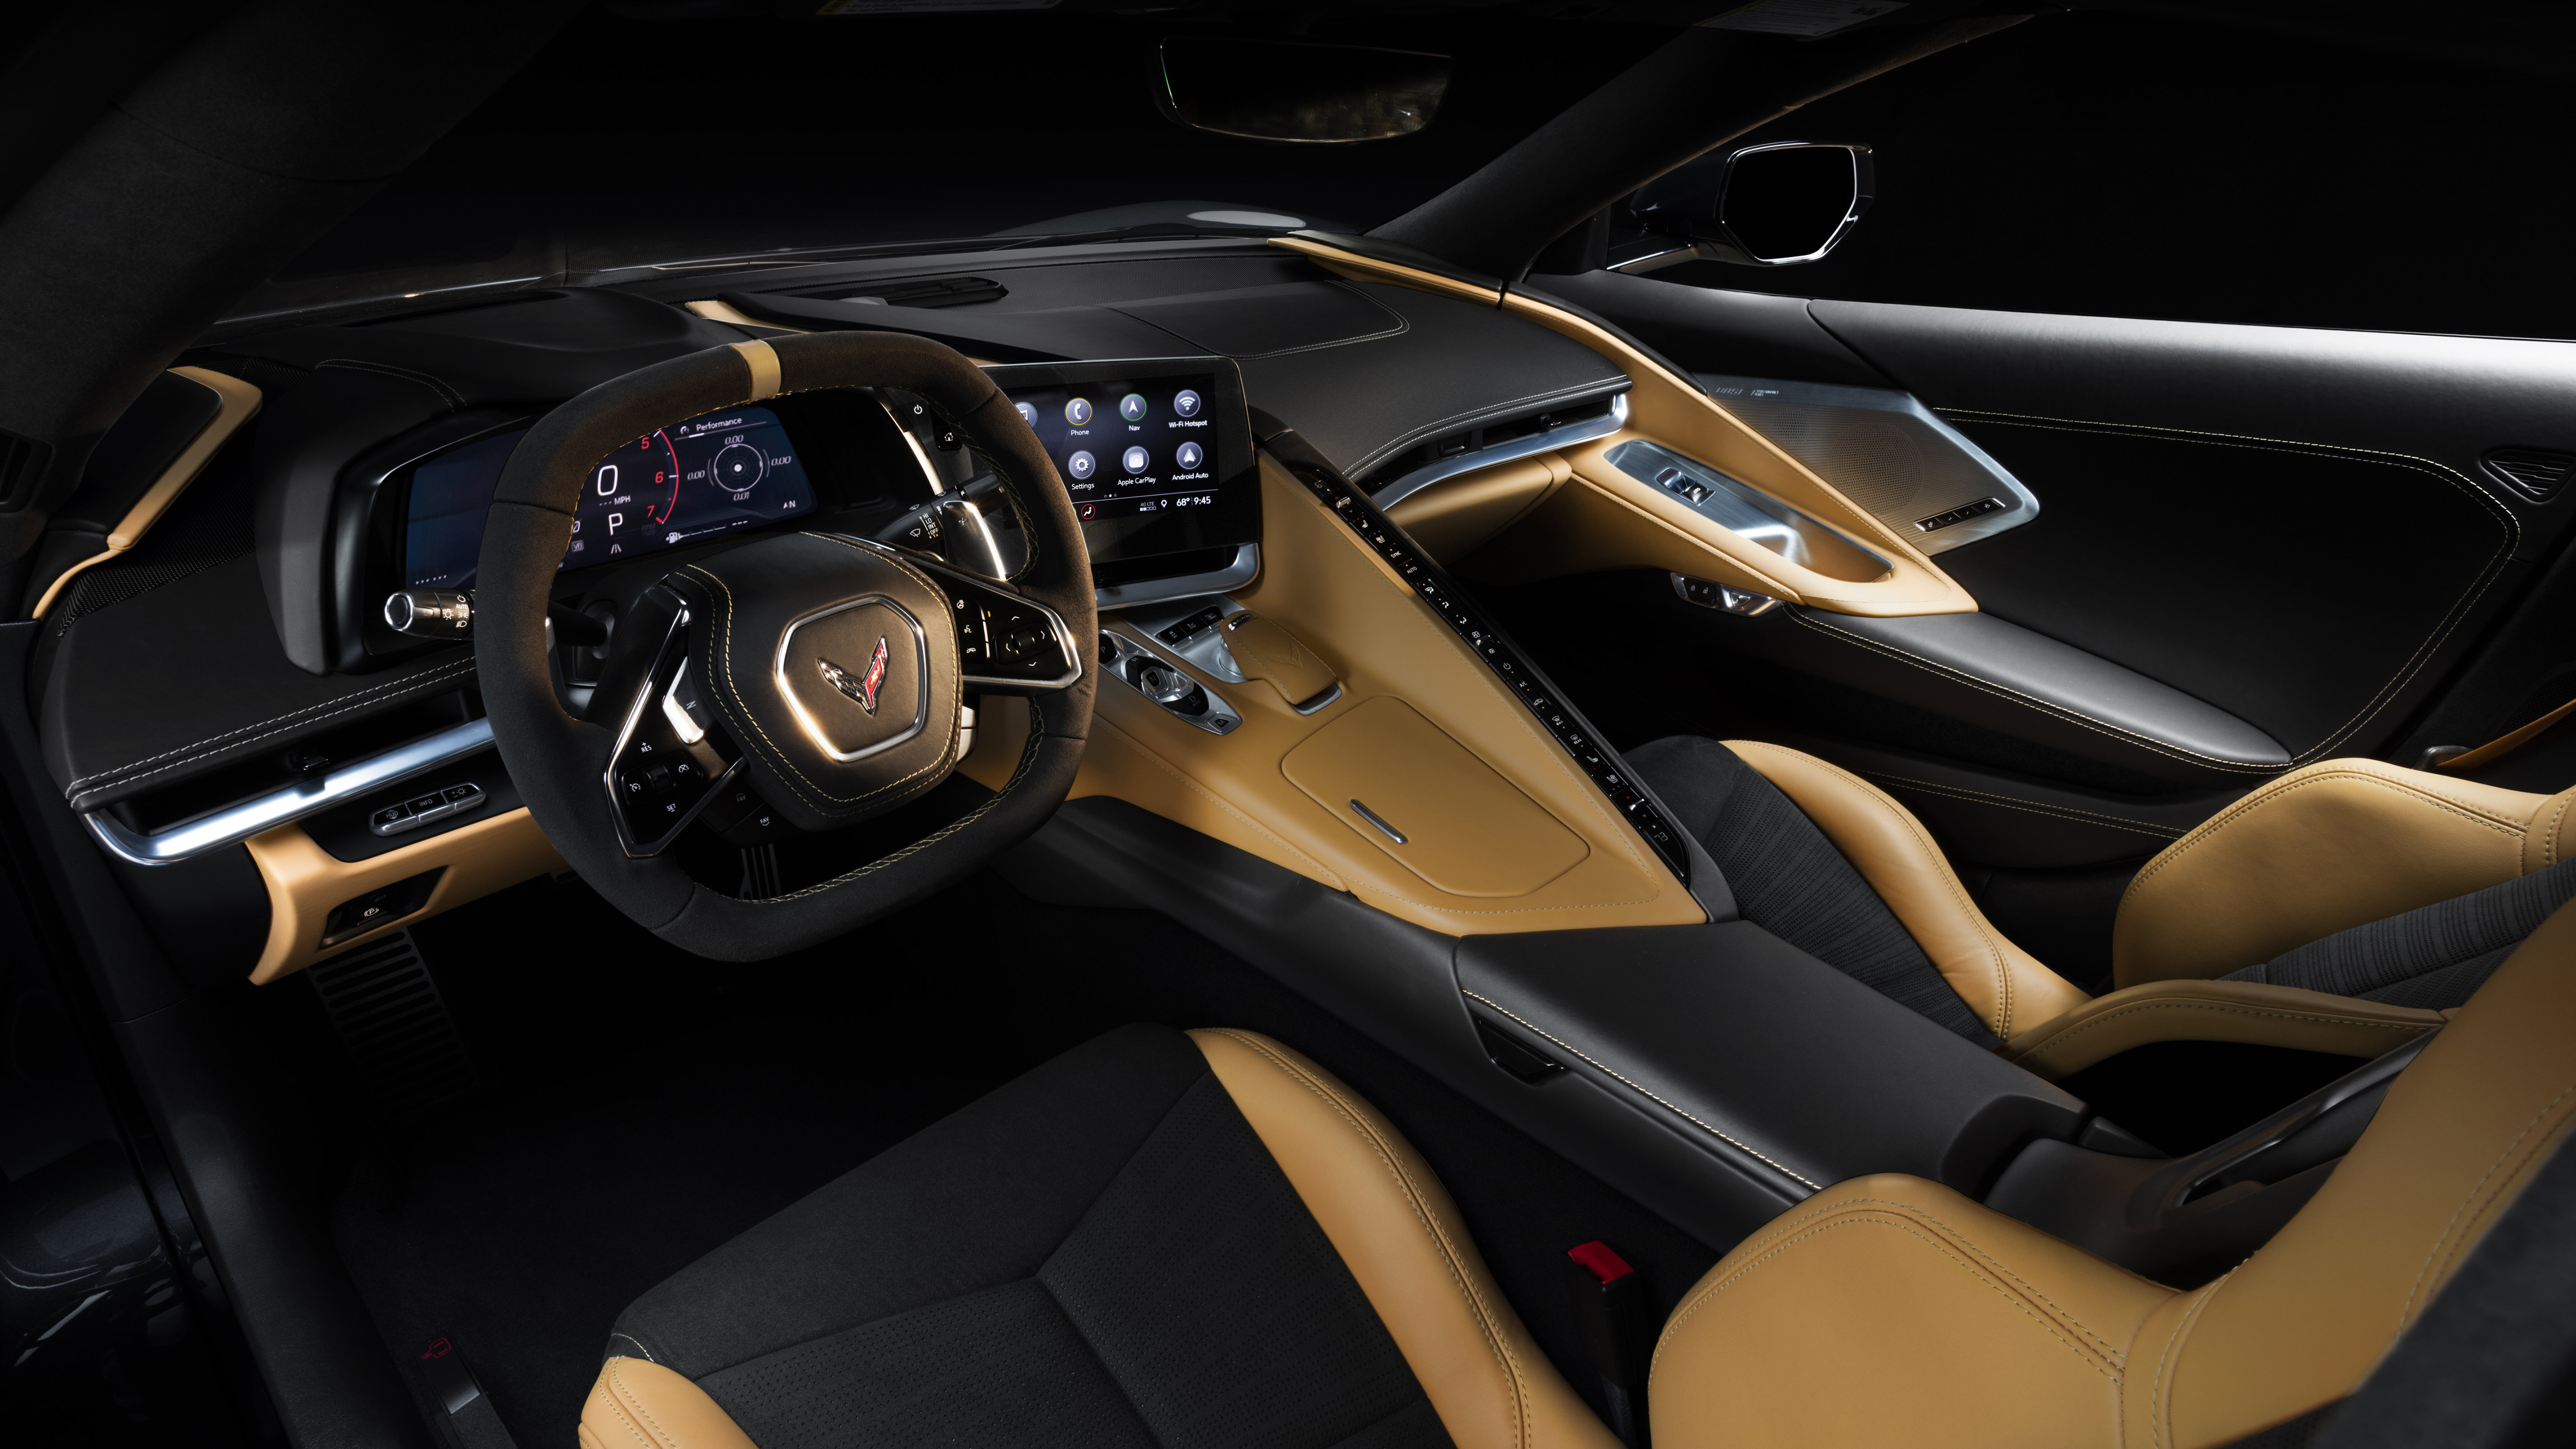 2020 Chevrolet Corvette Stingray Z51 Interior 4K Wallpaper HD 5120x2880